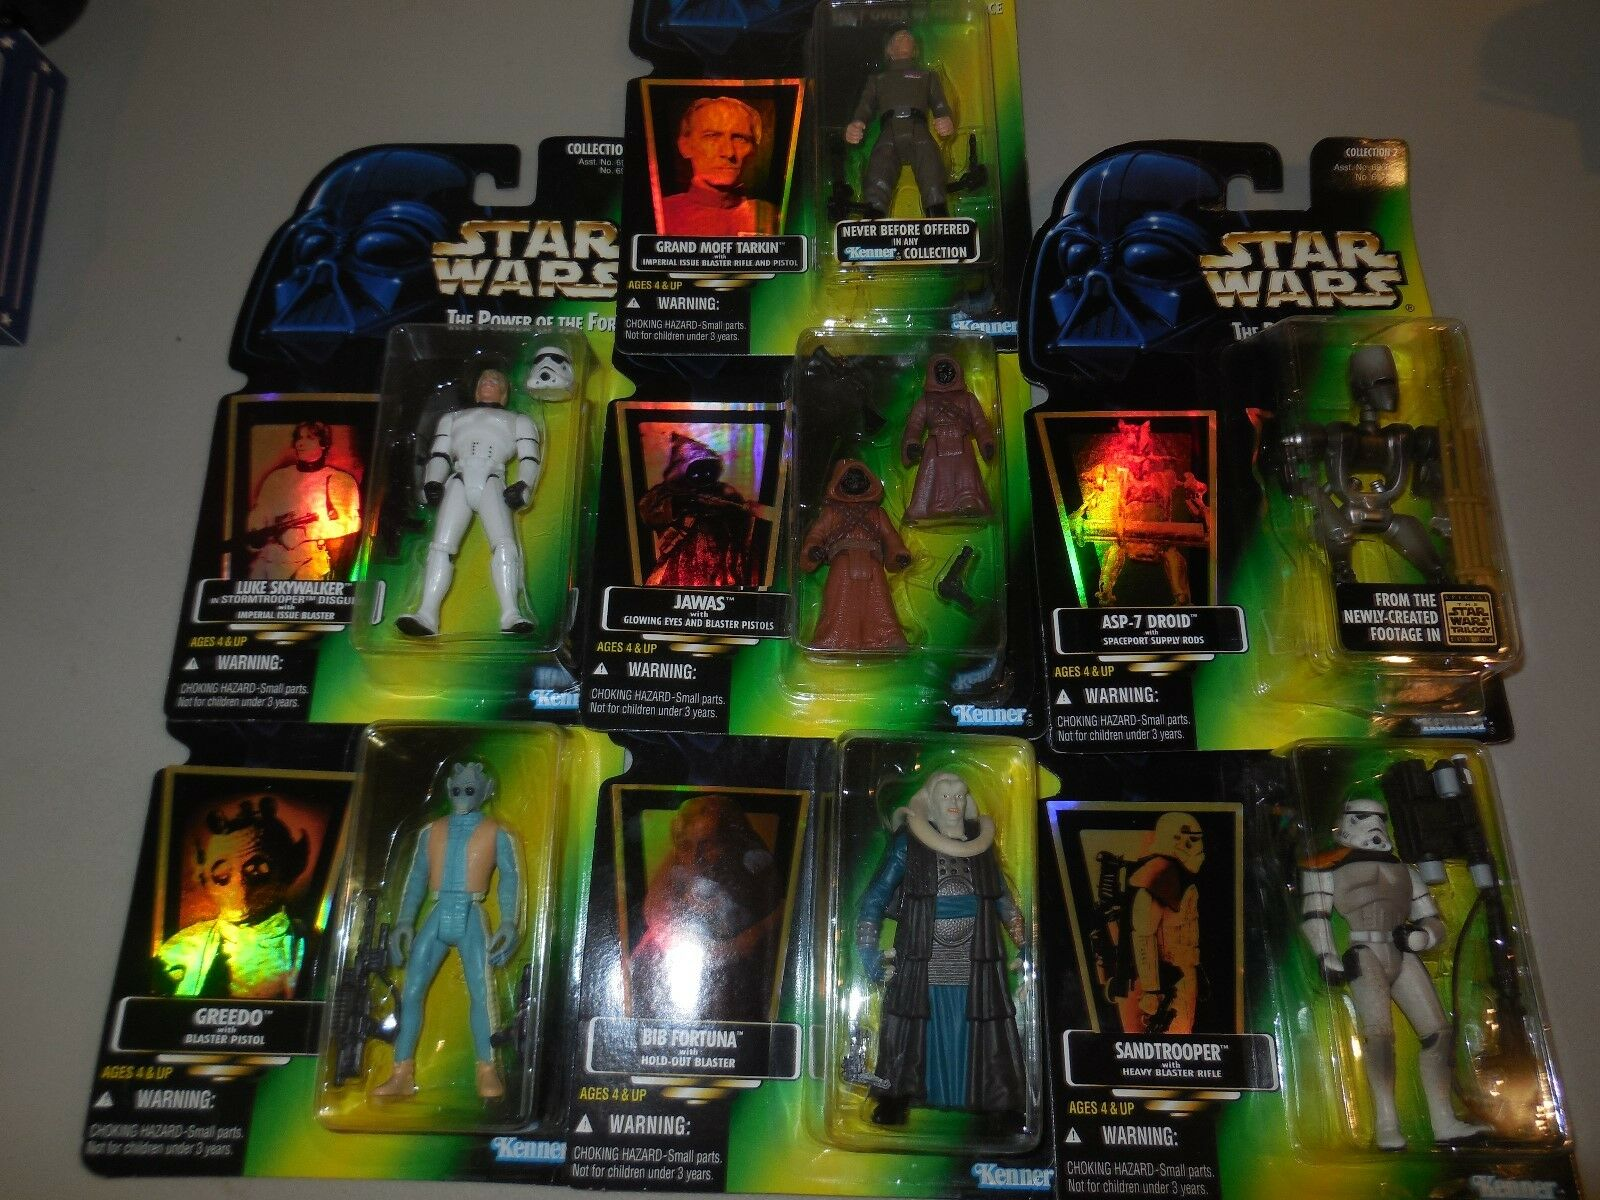 7,1996,hasbros Star Wars-figurer Jawas-Greedo-sandtrooper-